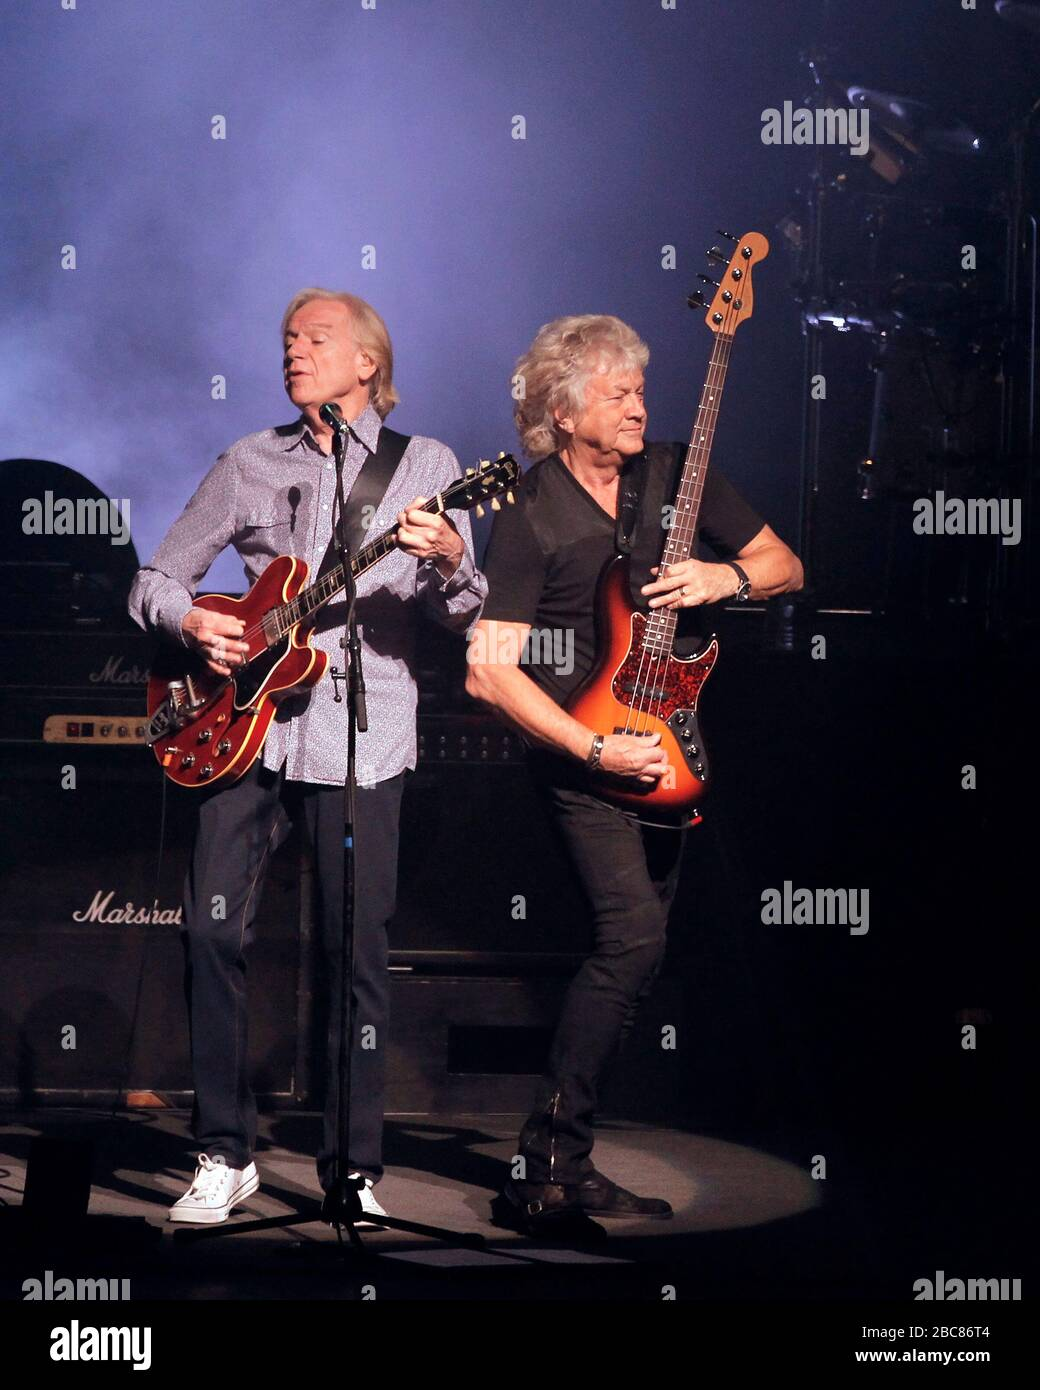 Justin Hayward And John Lodge L To R Of The Moody Blues Perform With Graeme Edge